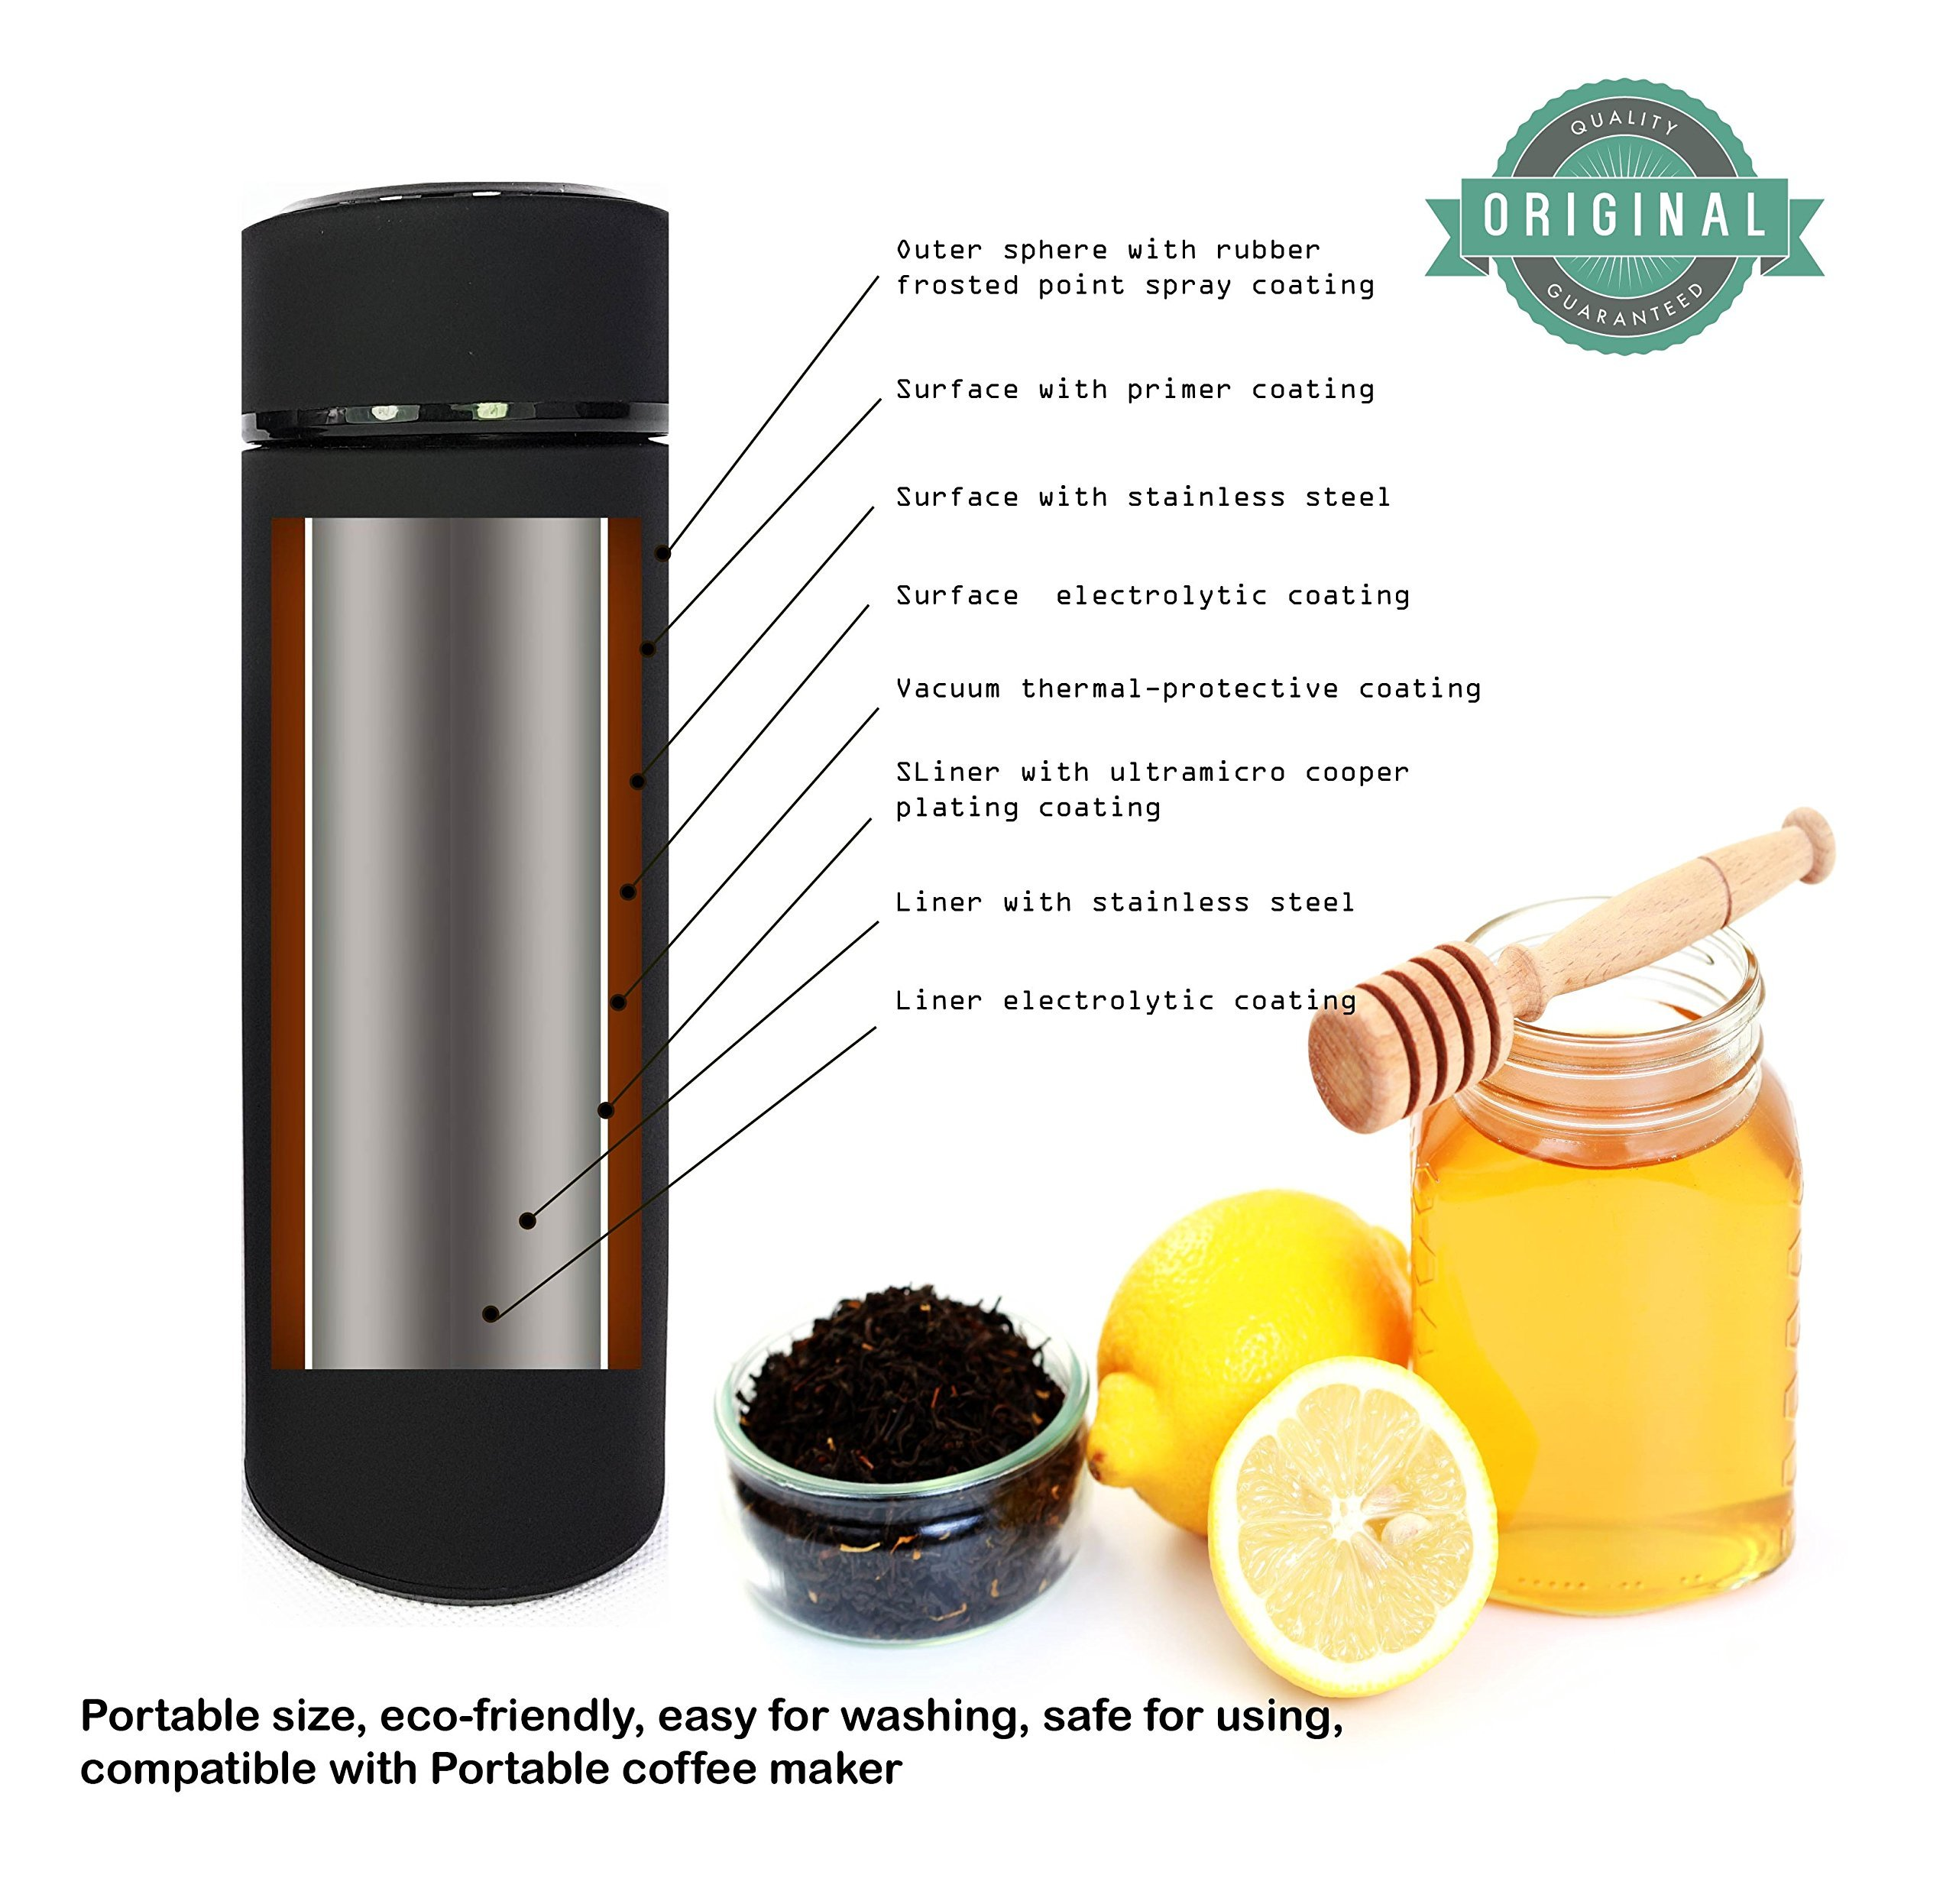 Trimm Portable Hand Held Espresso Machine and Thermos Vacuum Insulated Double Wall | Portable Espresso Maker and Flask | Single Cup Coffee Maker and Tea Thermos Bottle | Travel Set Great Gift Idea by TRIMM THE FUTURE STARTS NOW (Image #6)